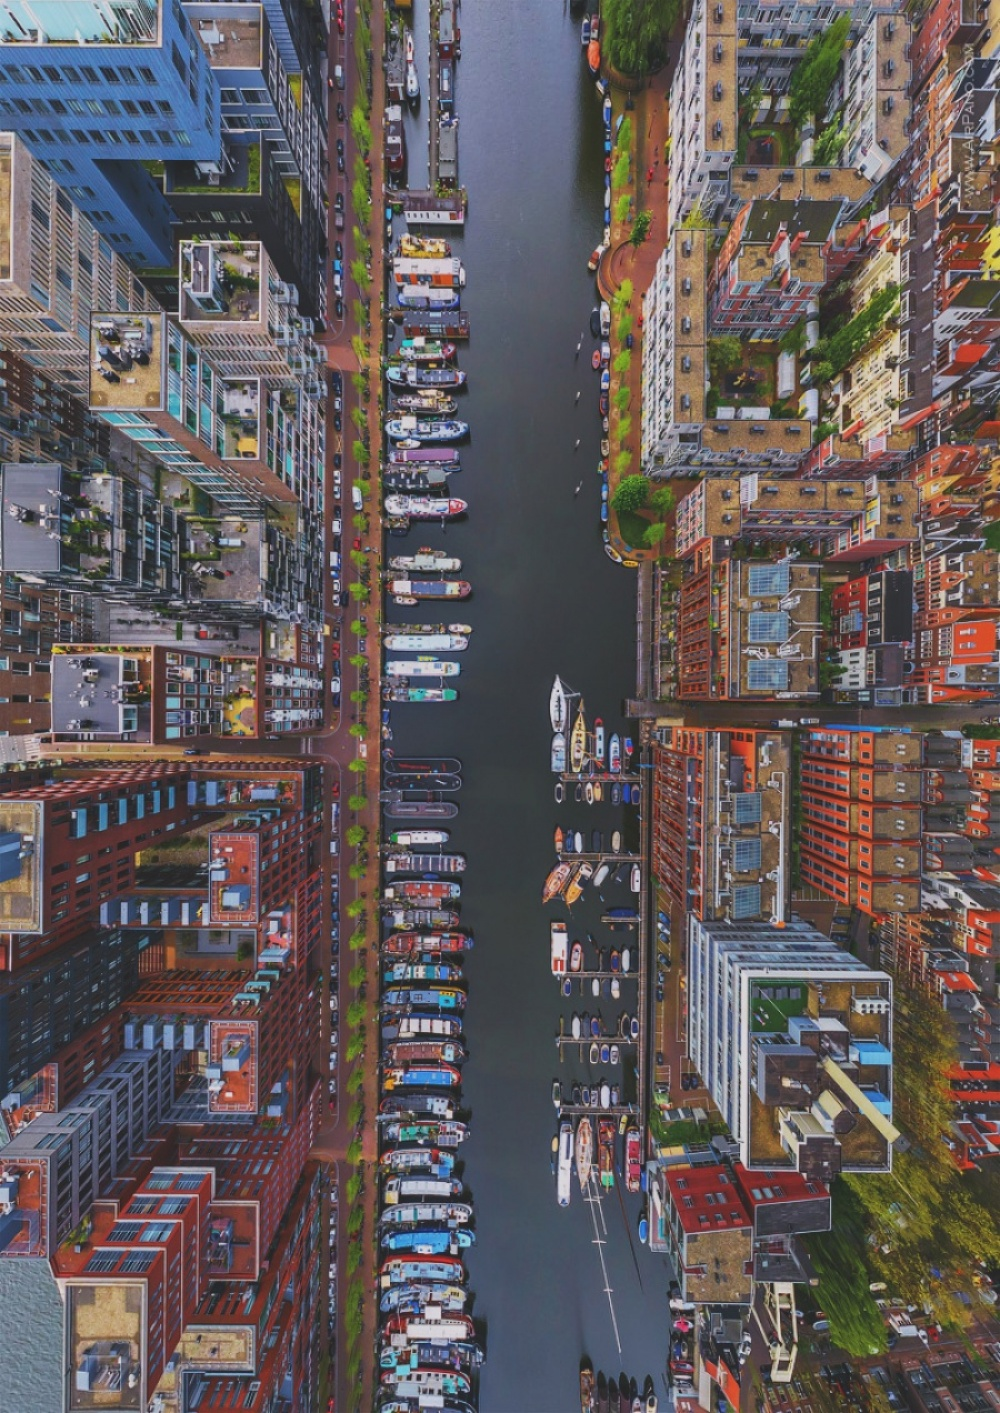 The 100 best photographs ever taken without photoshop - Westerdok District, Amsterdam